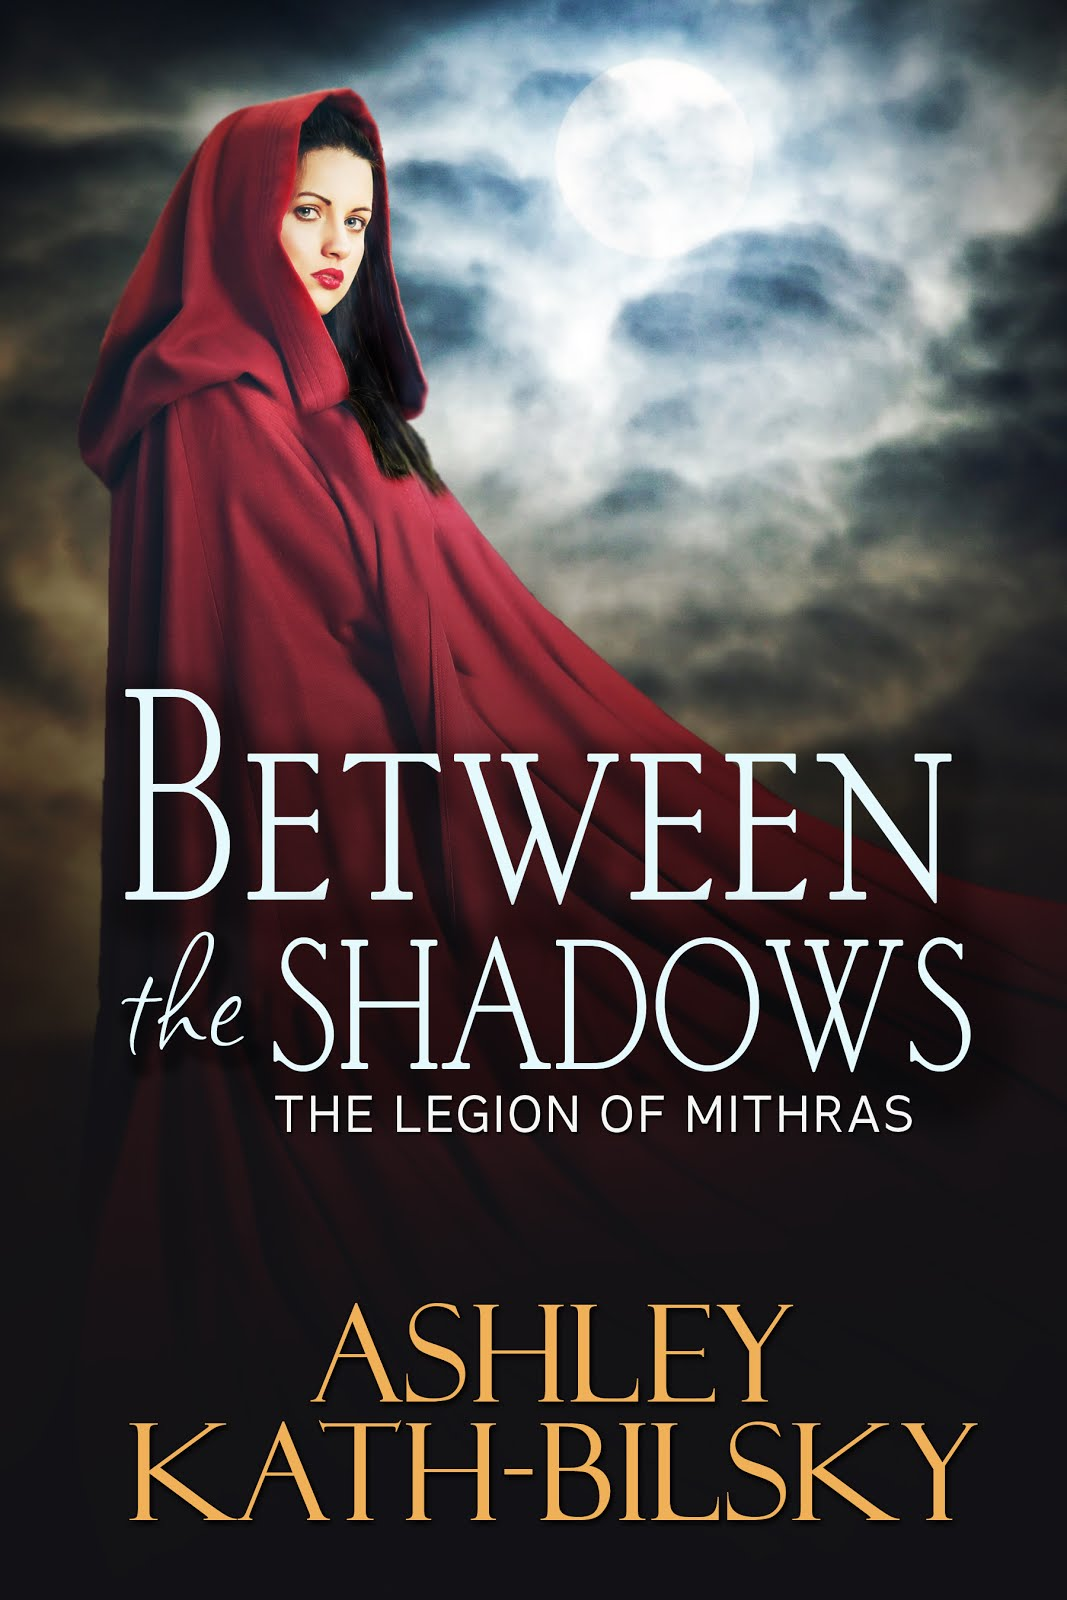 BETWEEN THE SHADOWS ~ THE LEGION OF MITHRAS